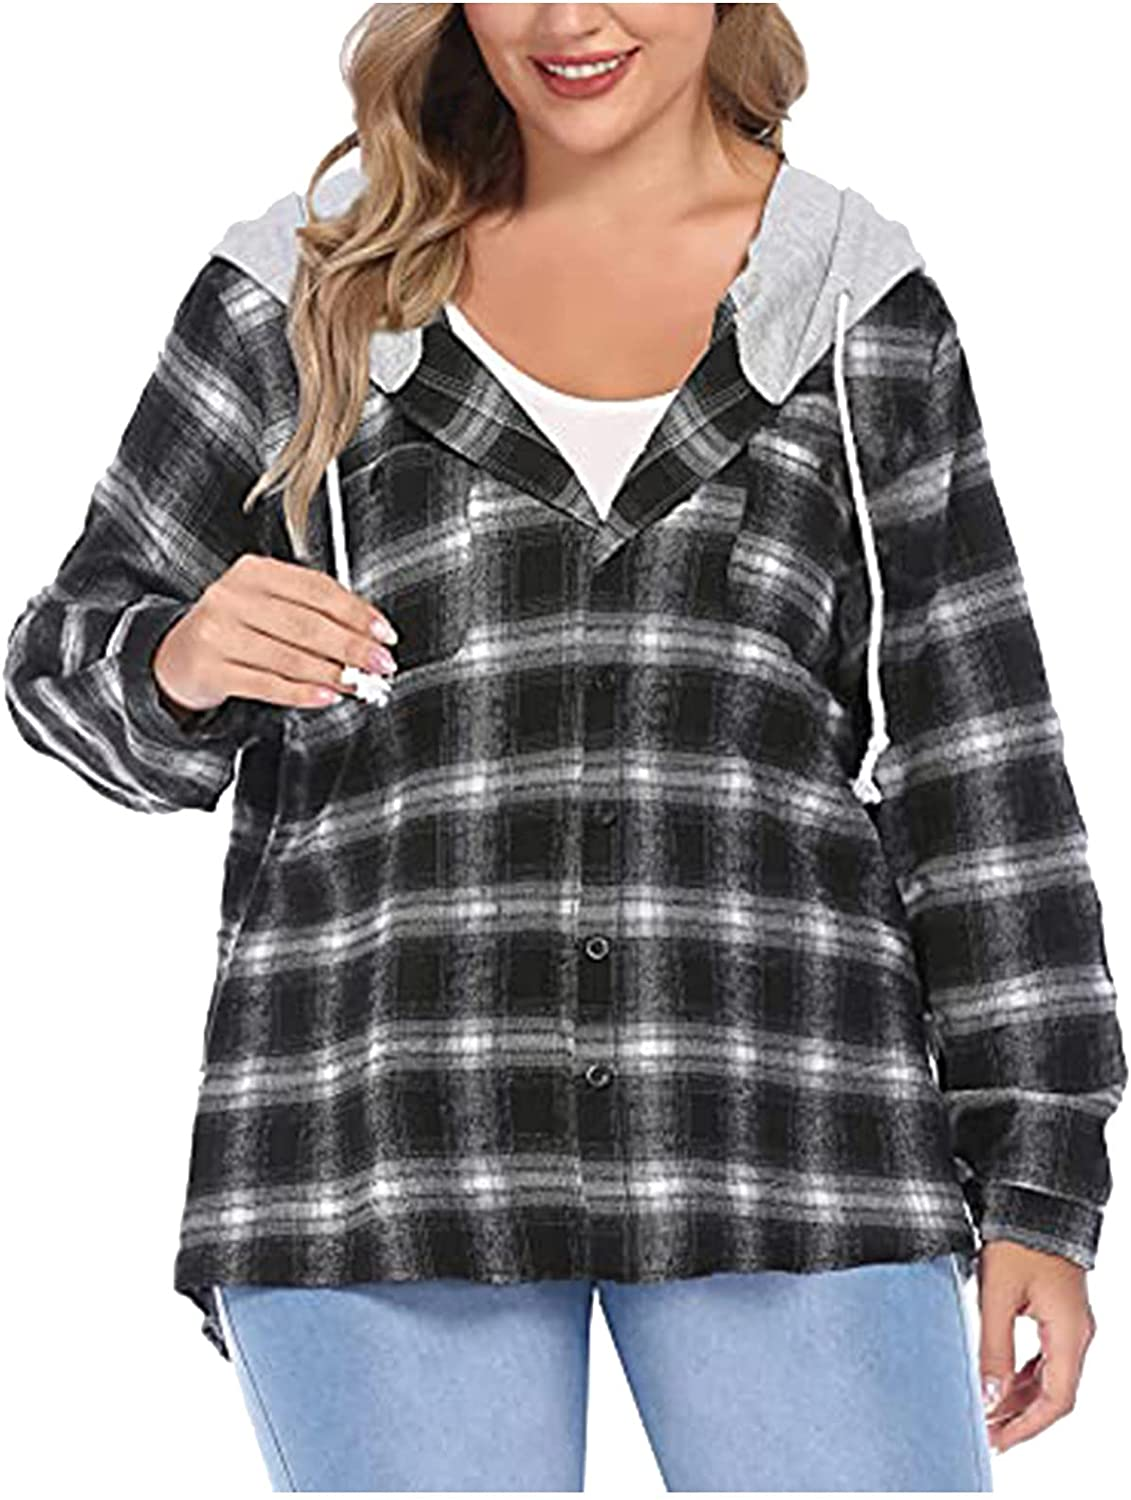 Plus Size Flannel Plaid Hoodie Long Sleeve Plaid Shirt for Women Jacket with Hood Button Down Casual Tops Tunic Blouse